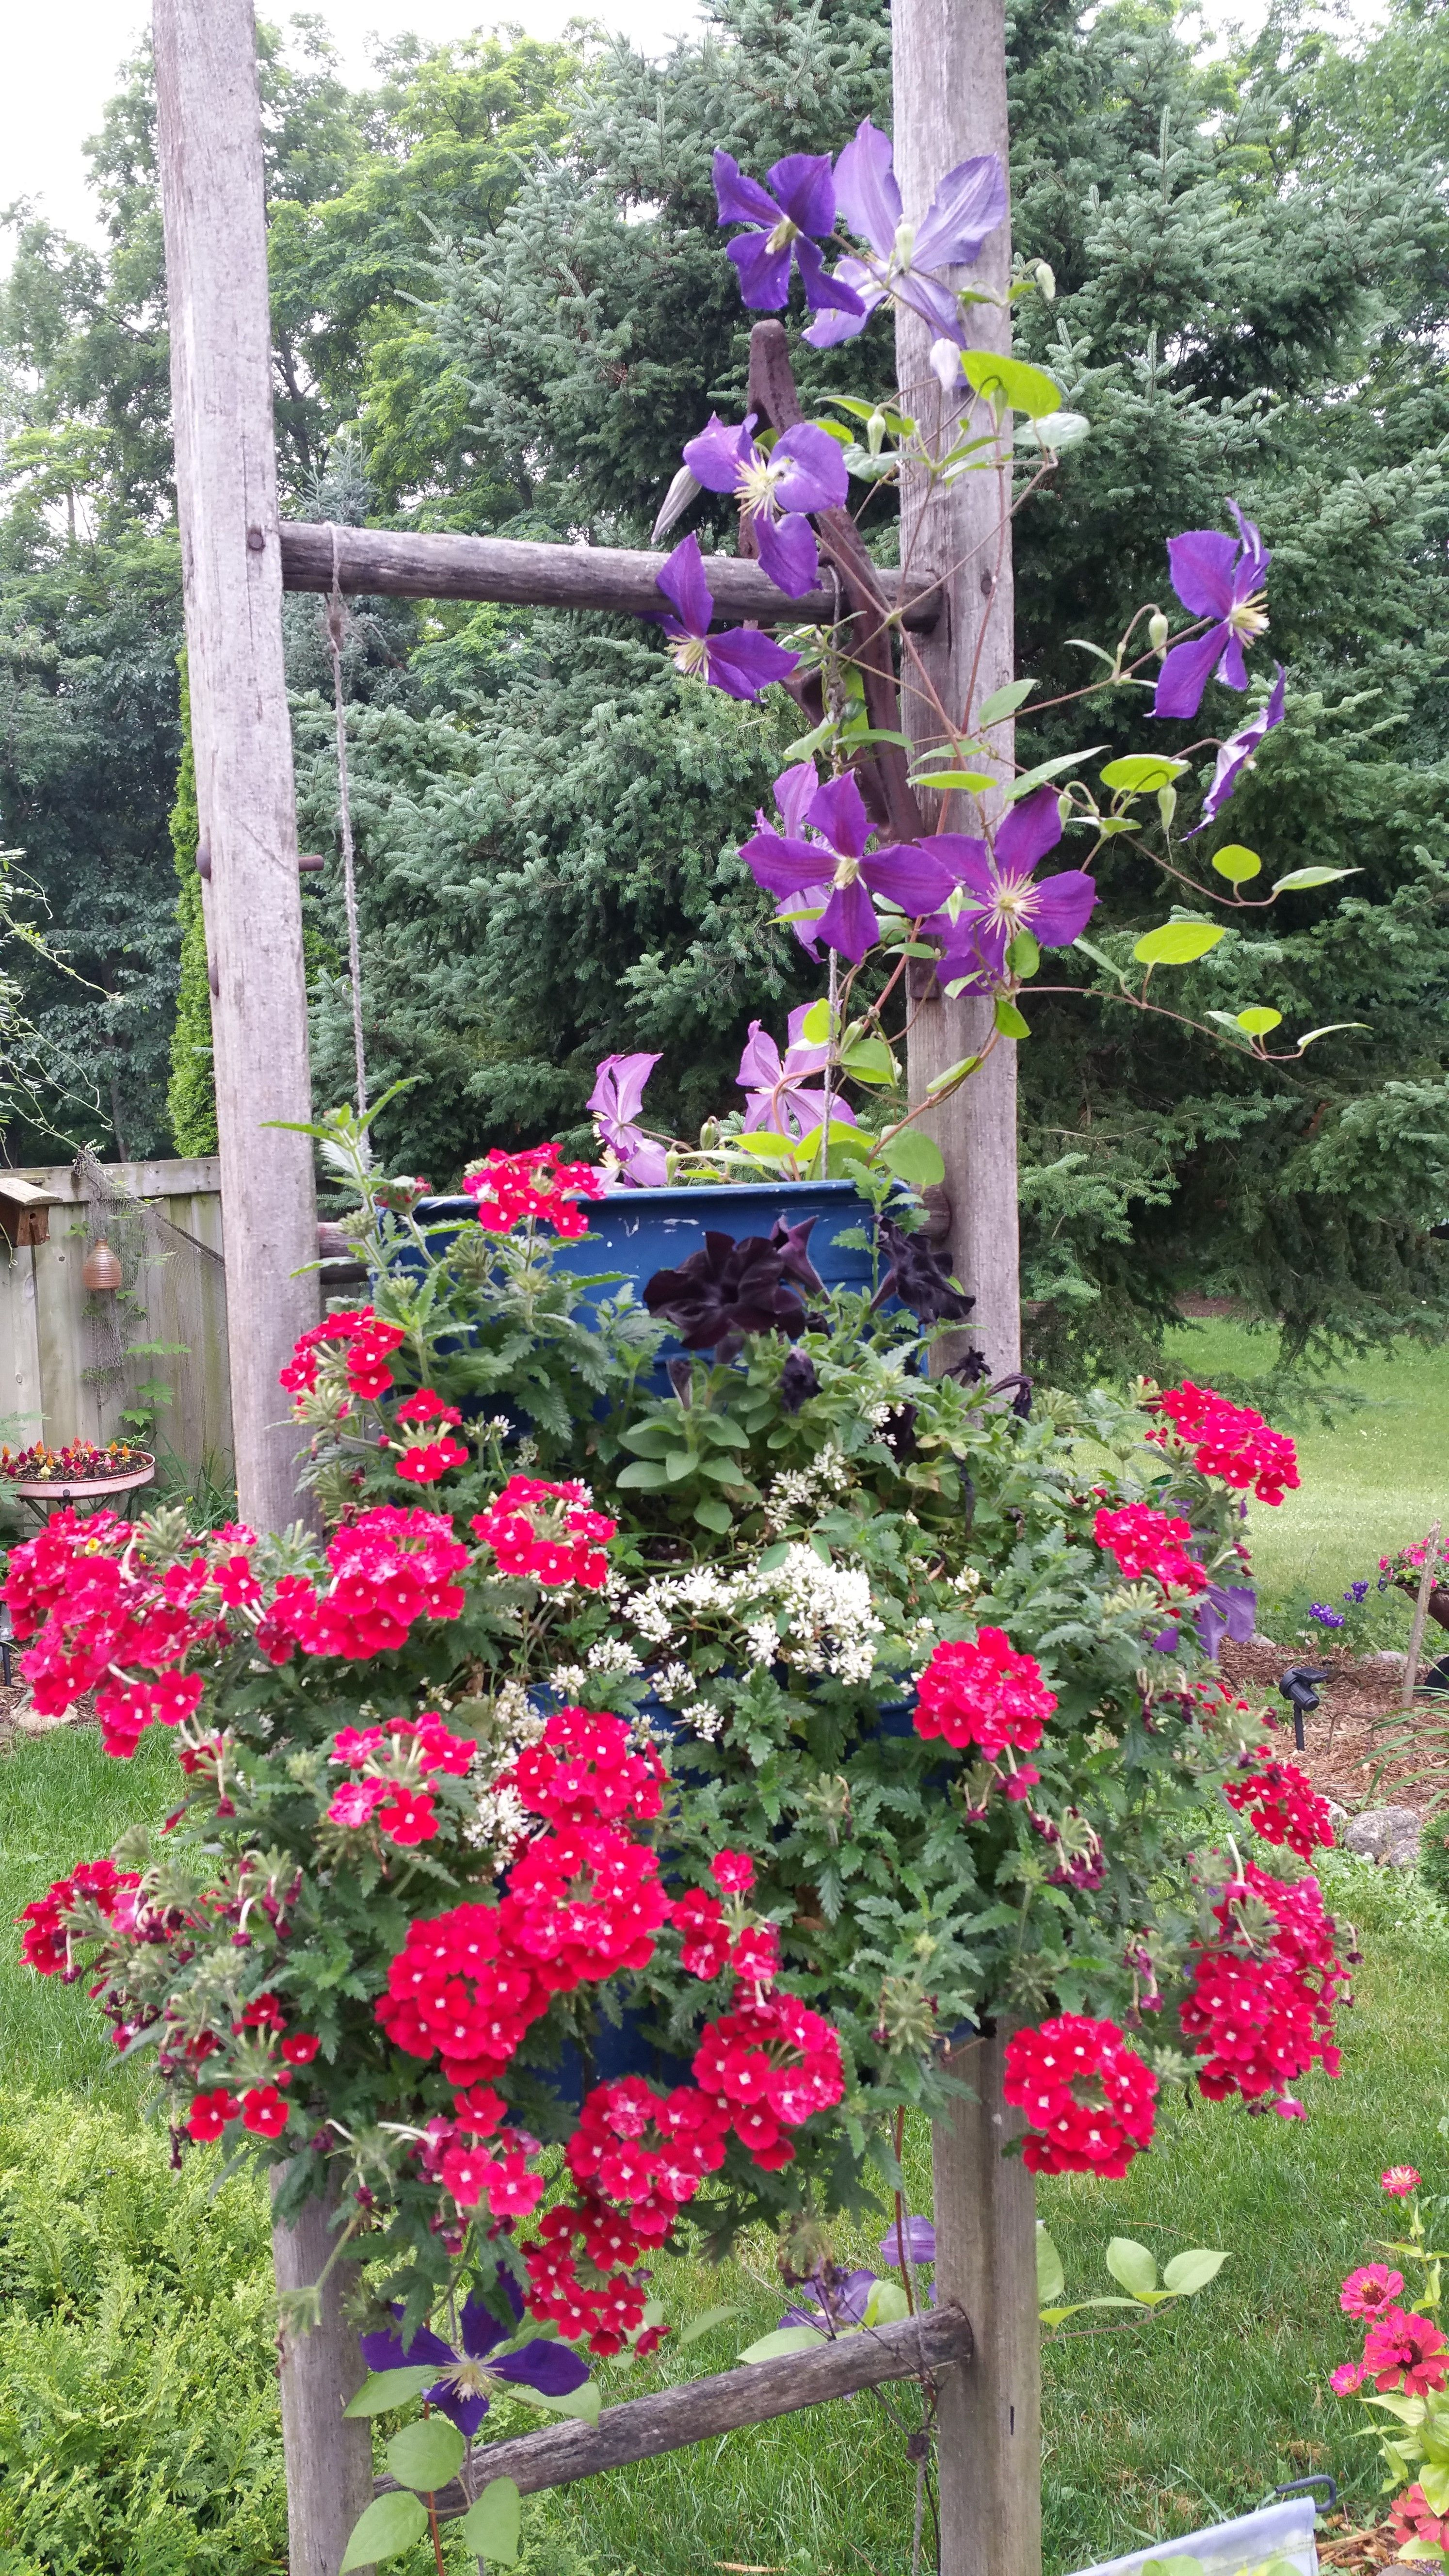 purple clematis on old wooden ladder other flowers in 2 paint trays put together june 2016